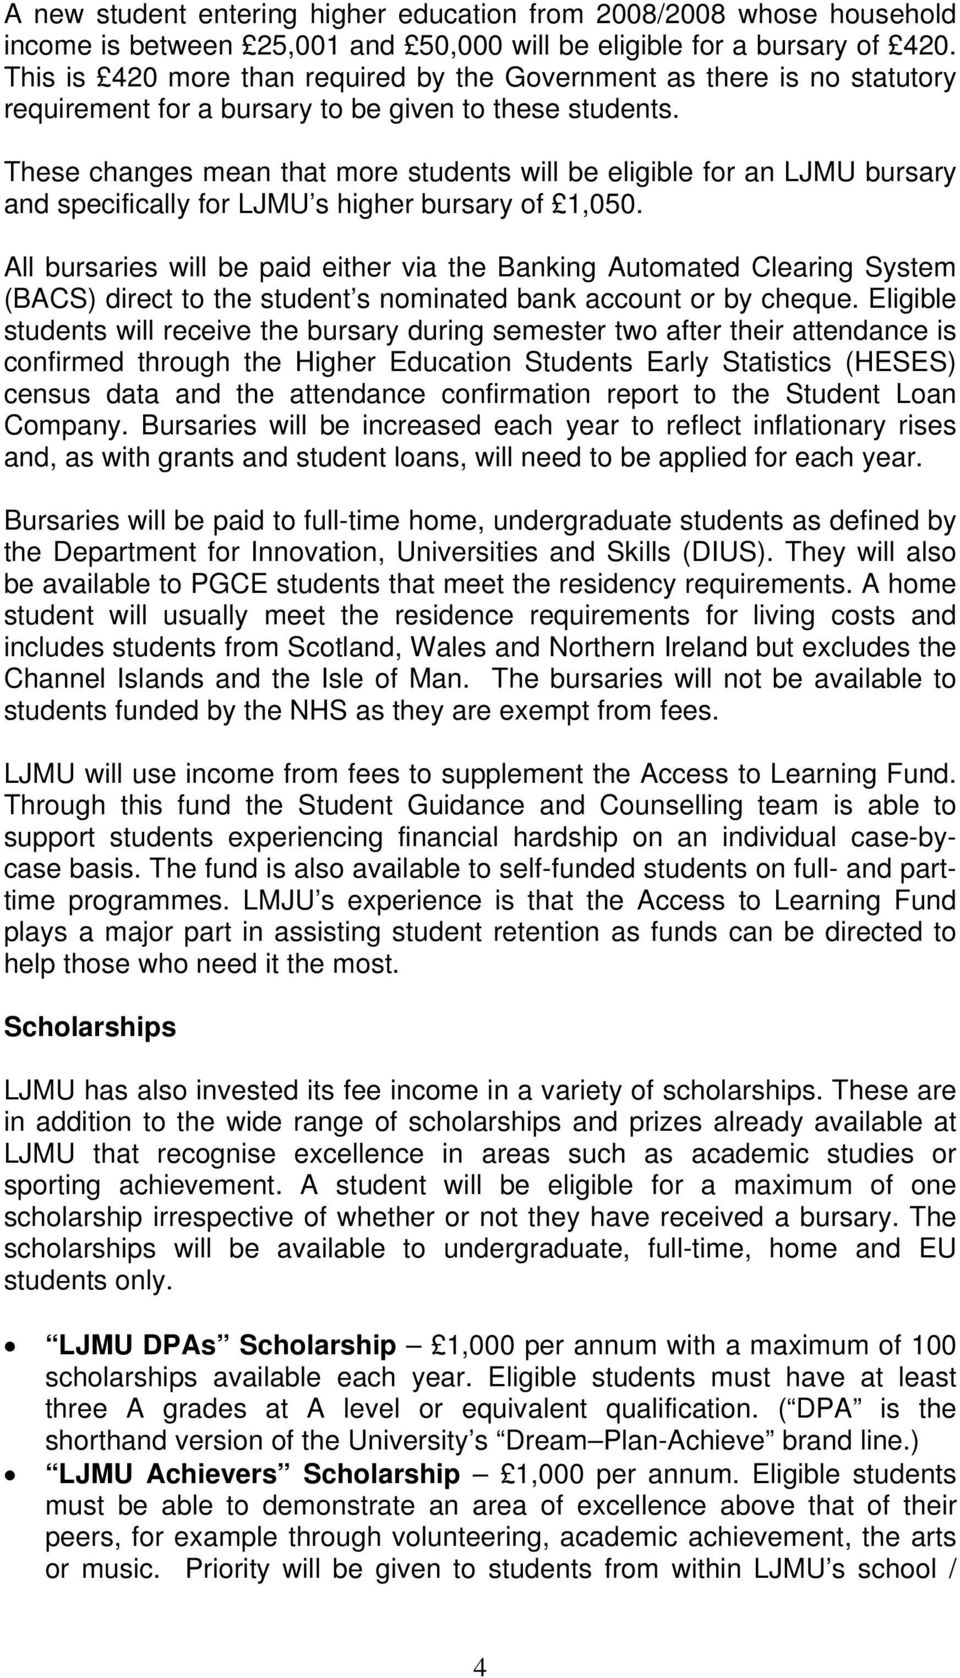 These changes mean that more students will be eligible for an LJMU bursary and specifically for LJMU s higher bursary of 1,050.